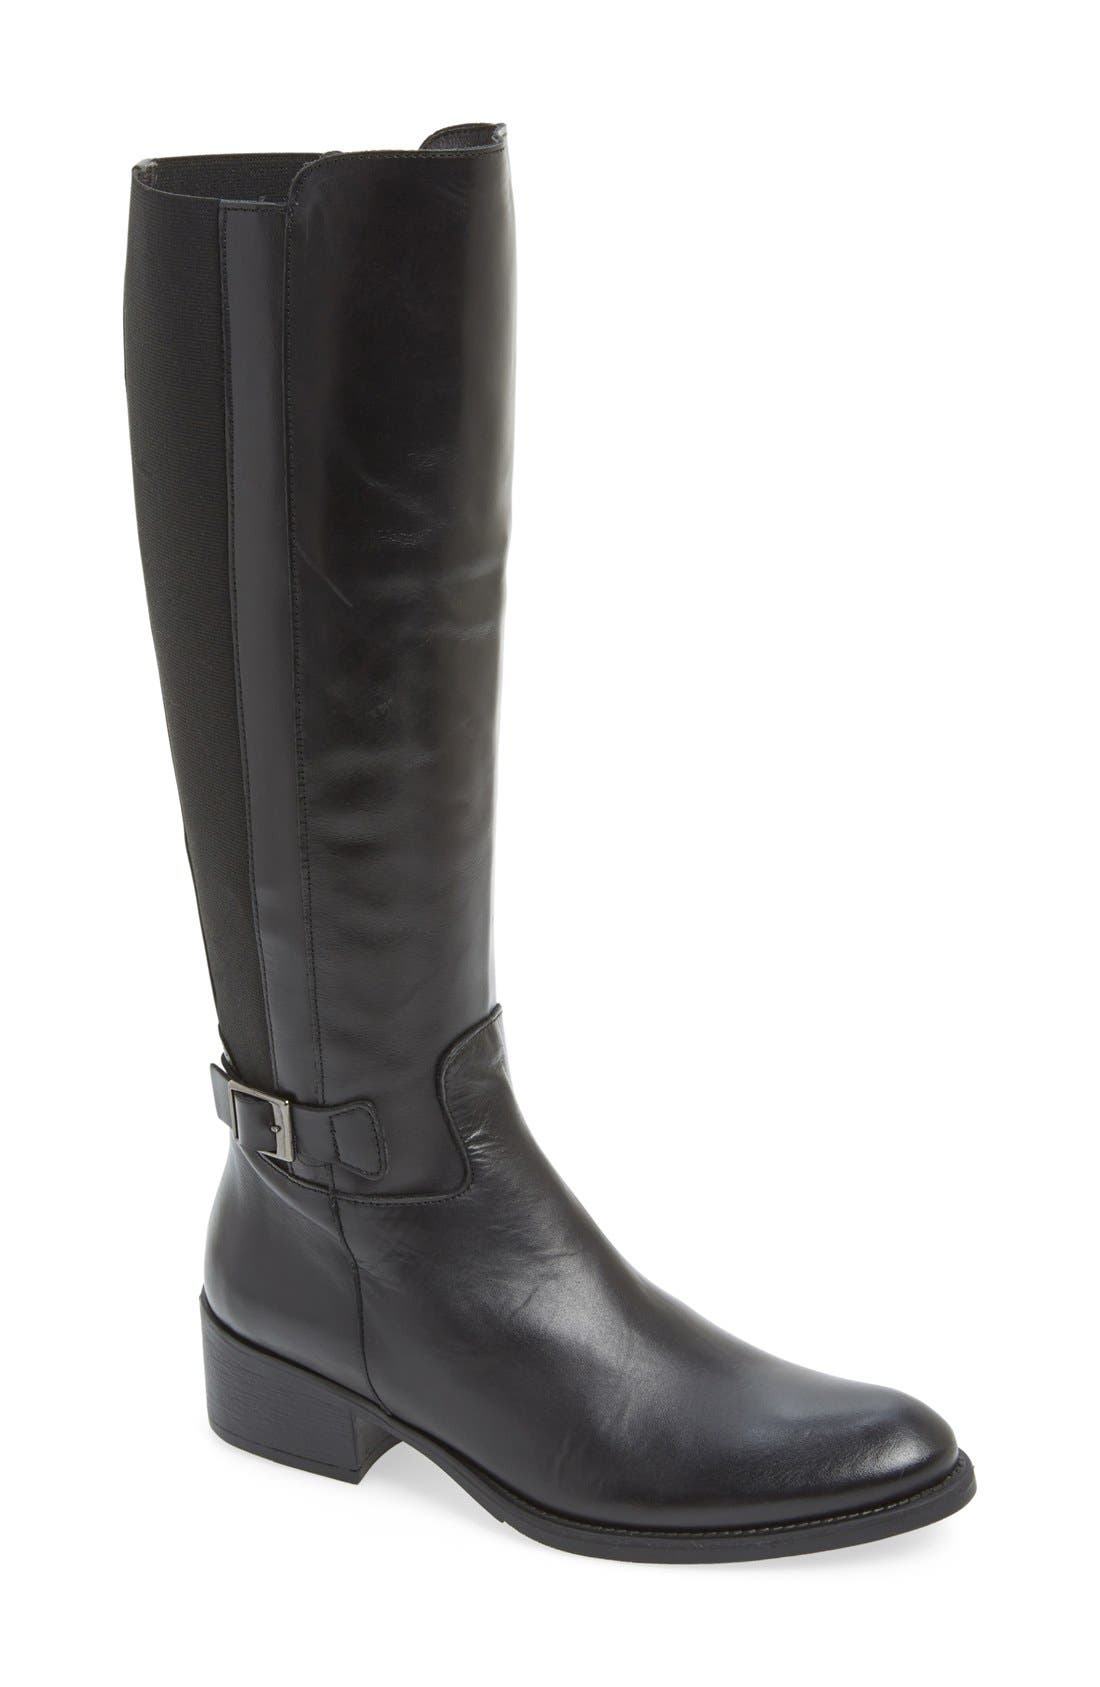 'Tacoma' Tall Elastic Back Boot in Black Leather